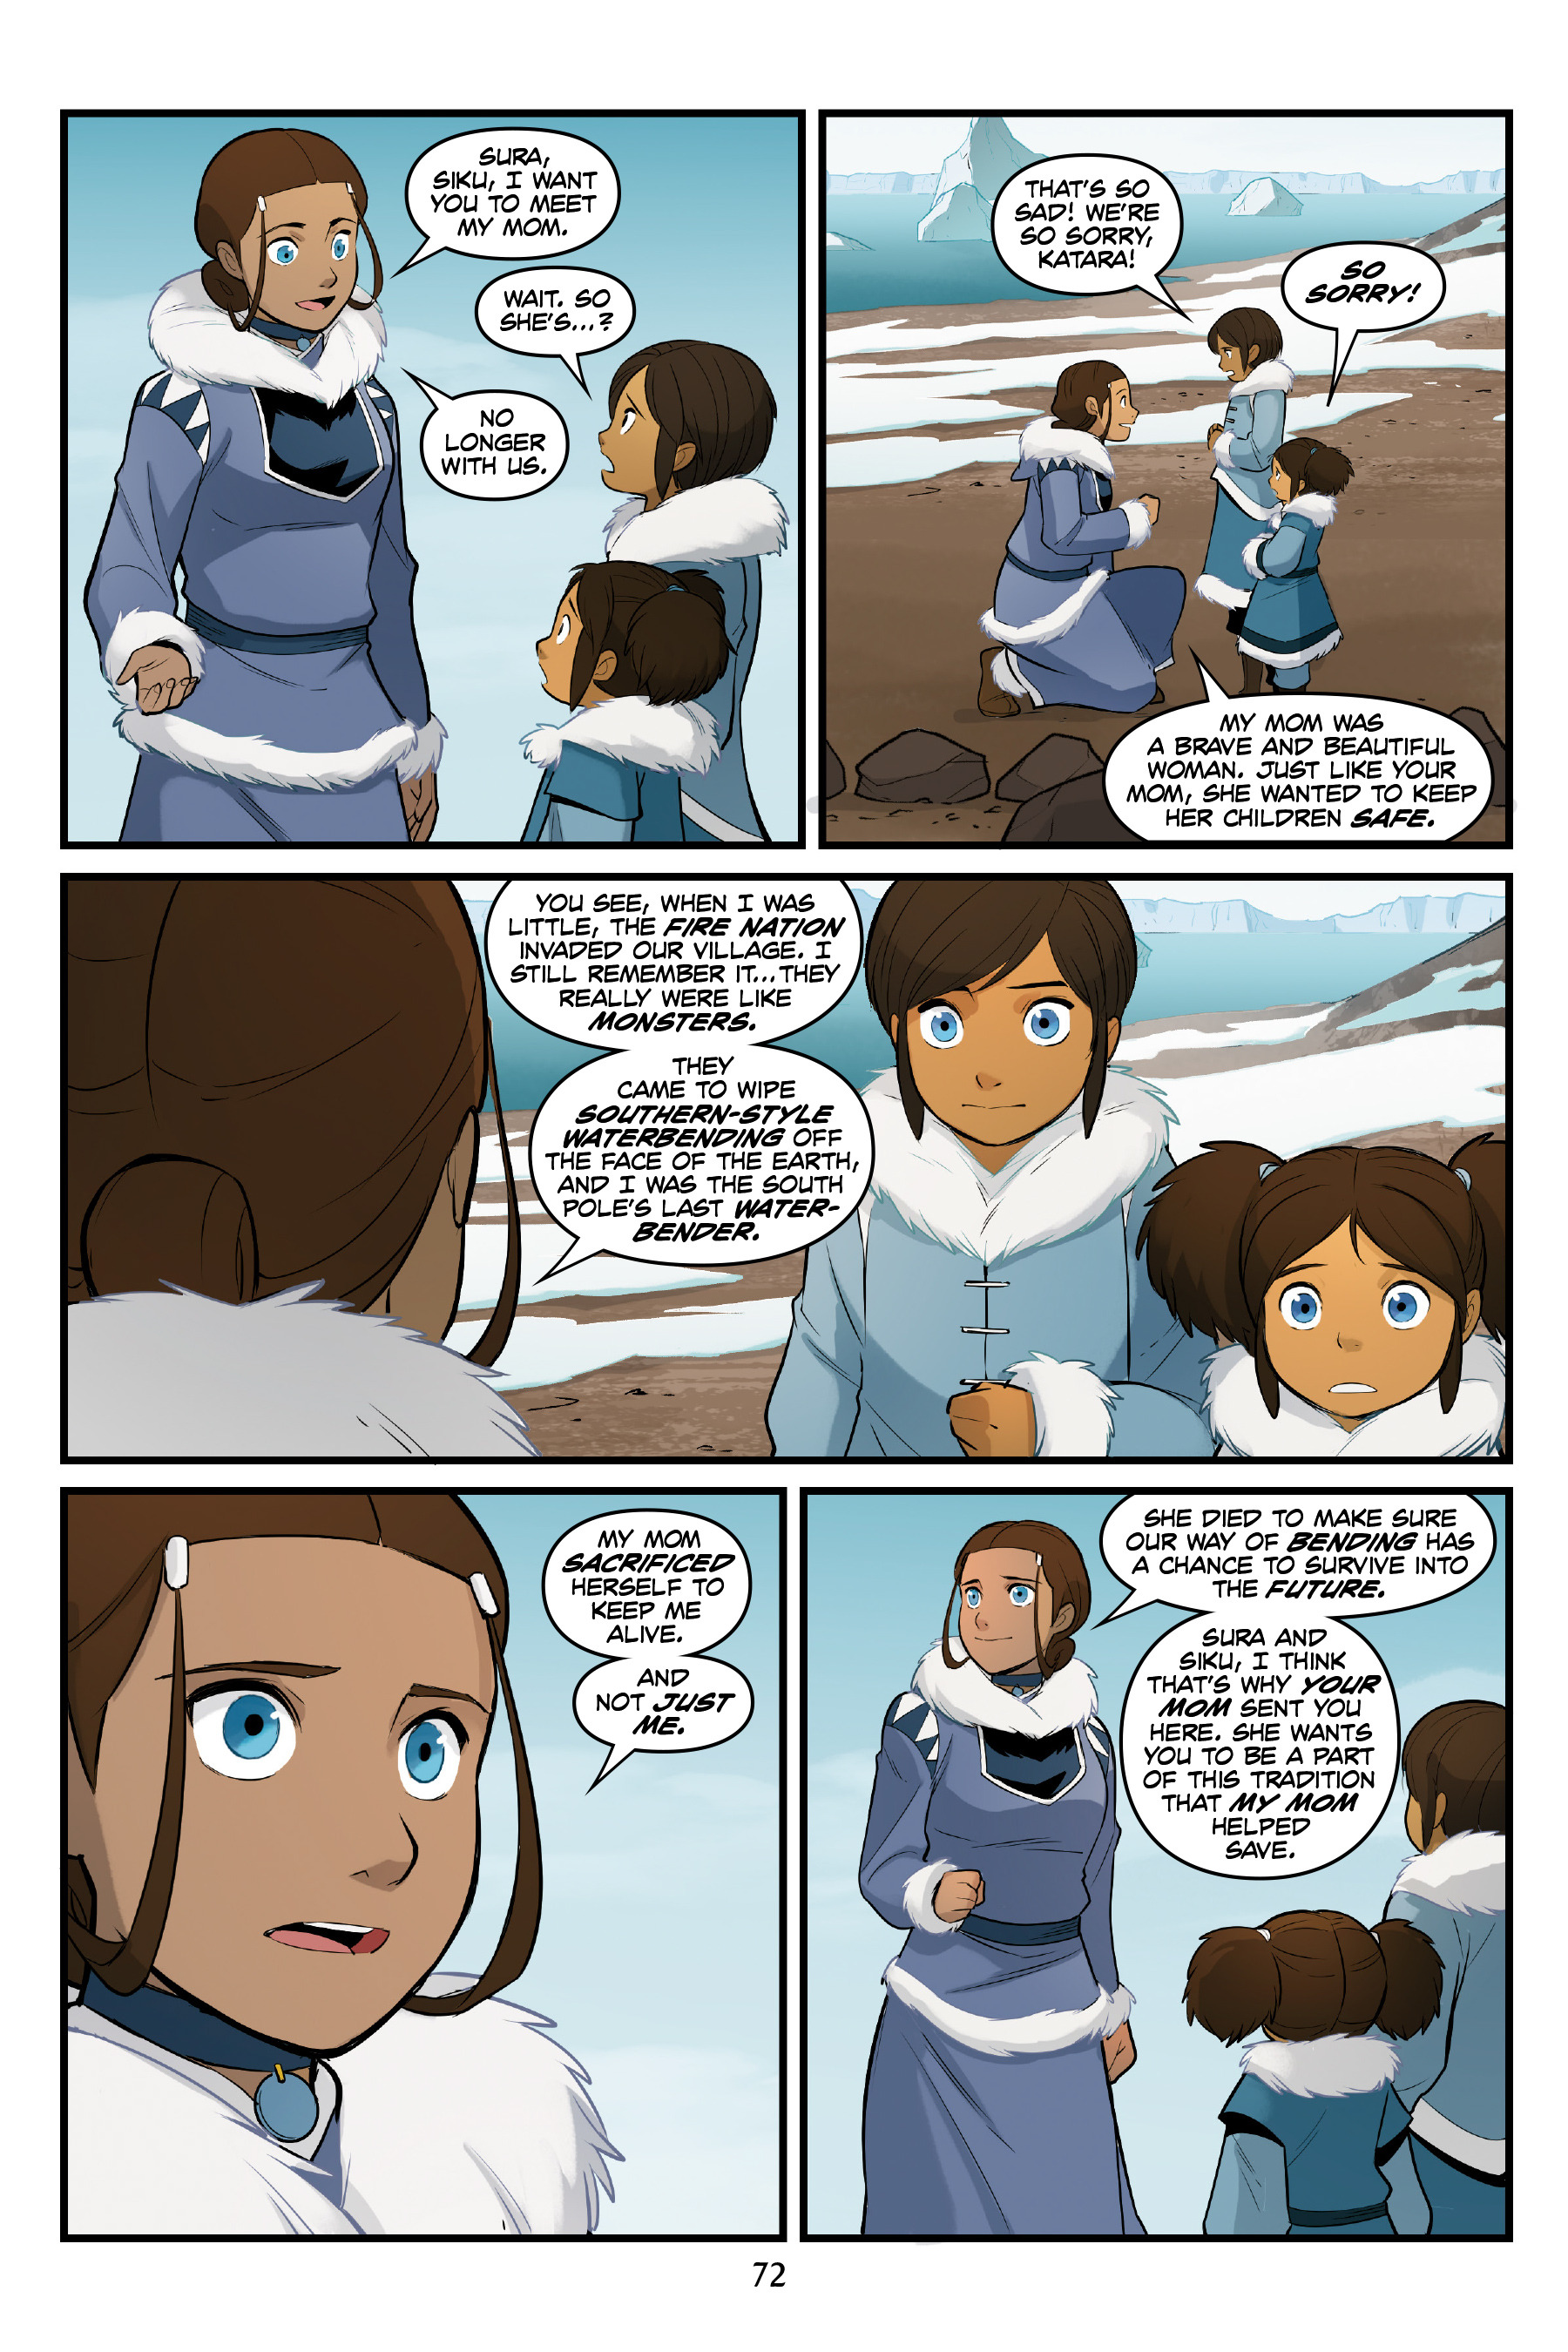 Read online Nickelodeon Avatar: The Last Airbender - North and South comic -  Issue #3 - 71